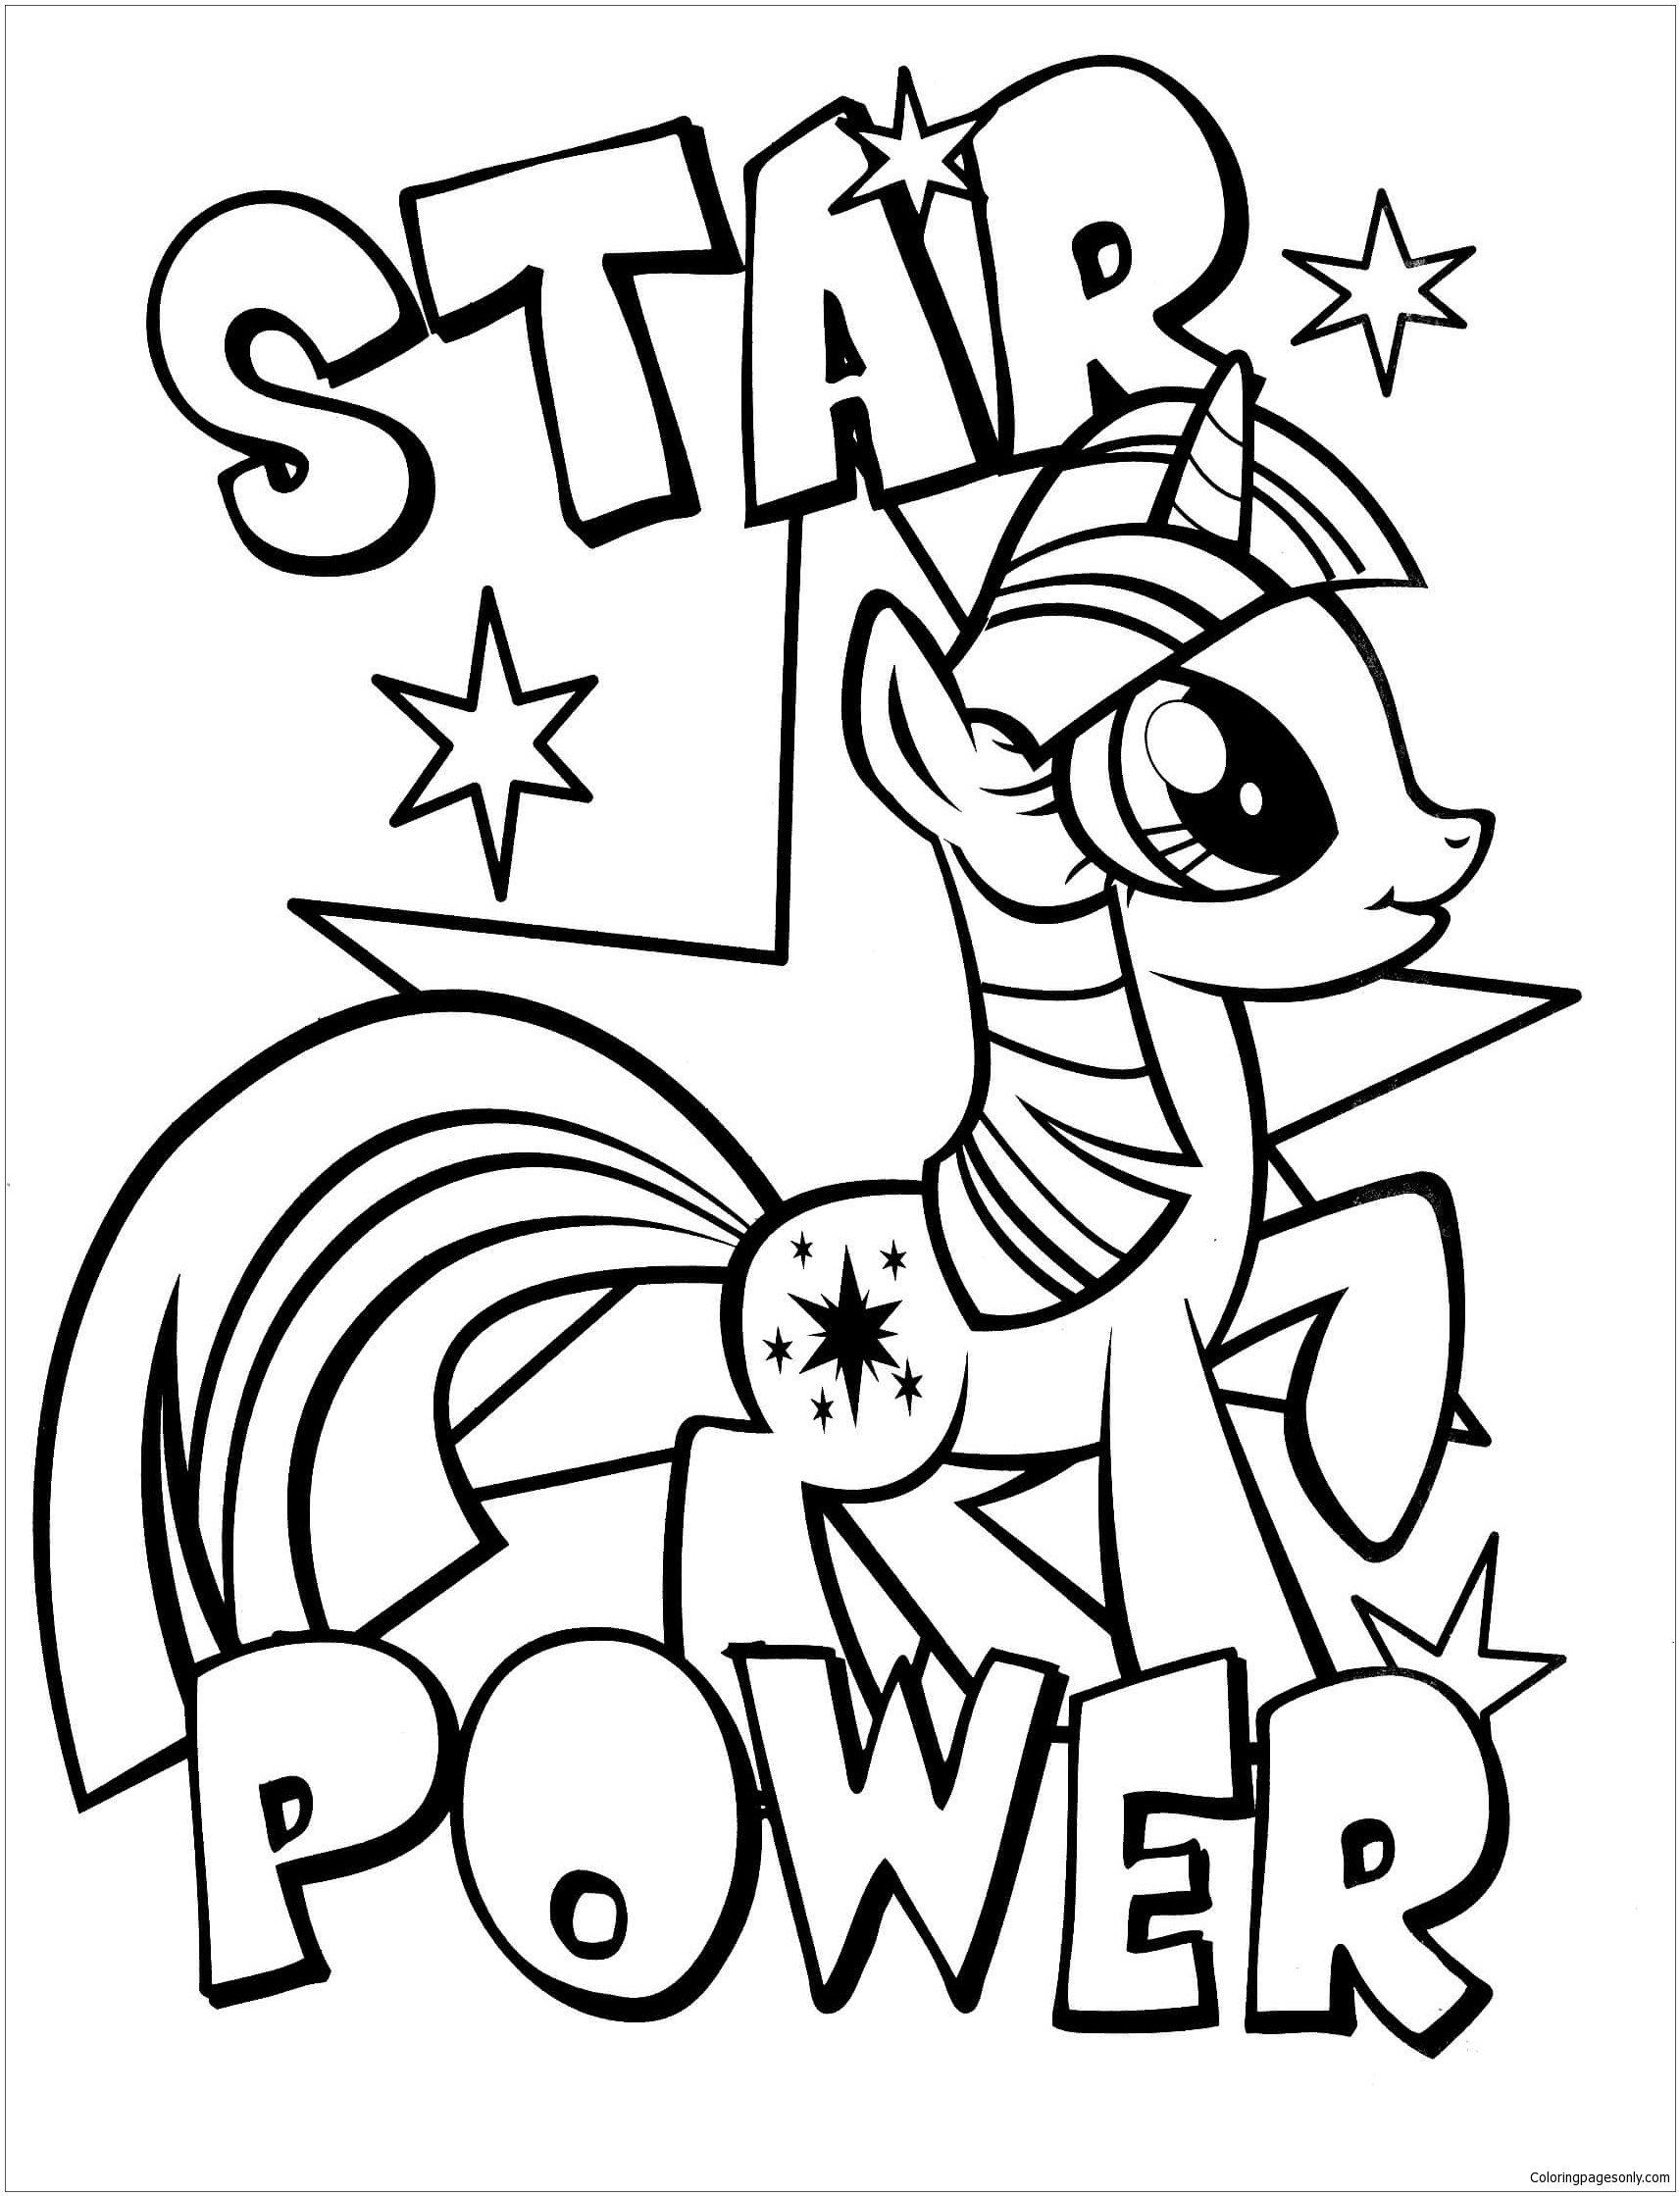 Free My Little Pony Coloring Pages My Little Pony 3 Coloring Page Free Coloring Pages L In 2020 My Little Pony Printable Unicorn Coloring Pages My Little Pony Coloring